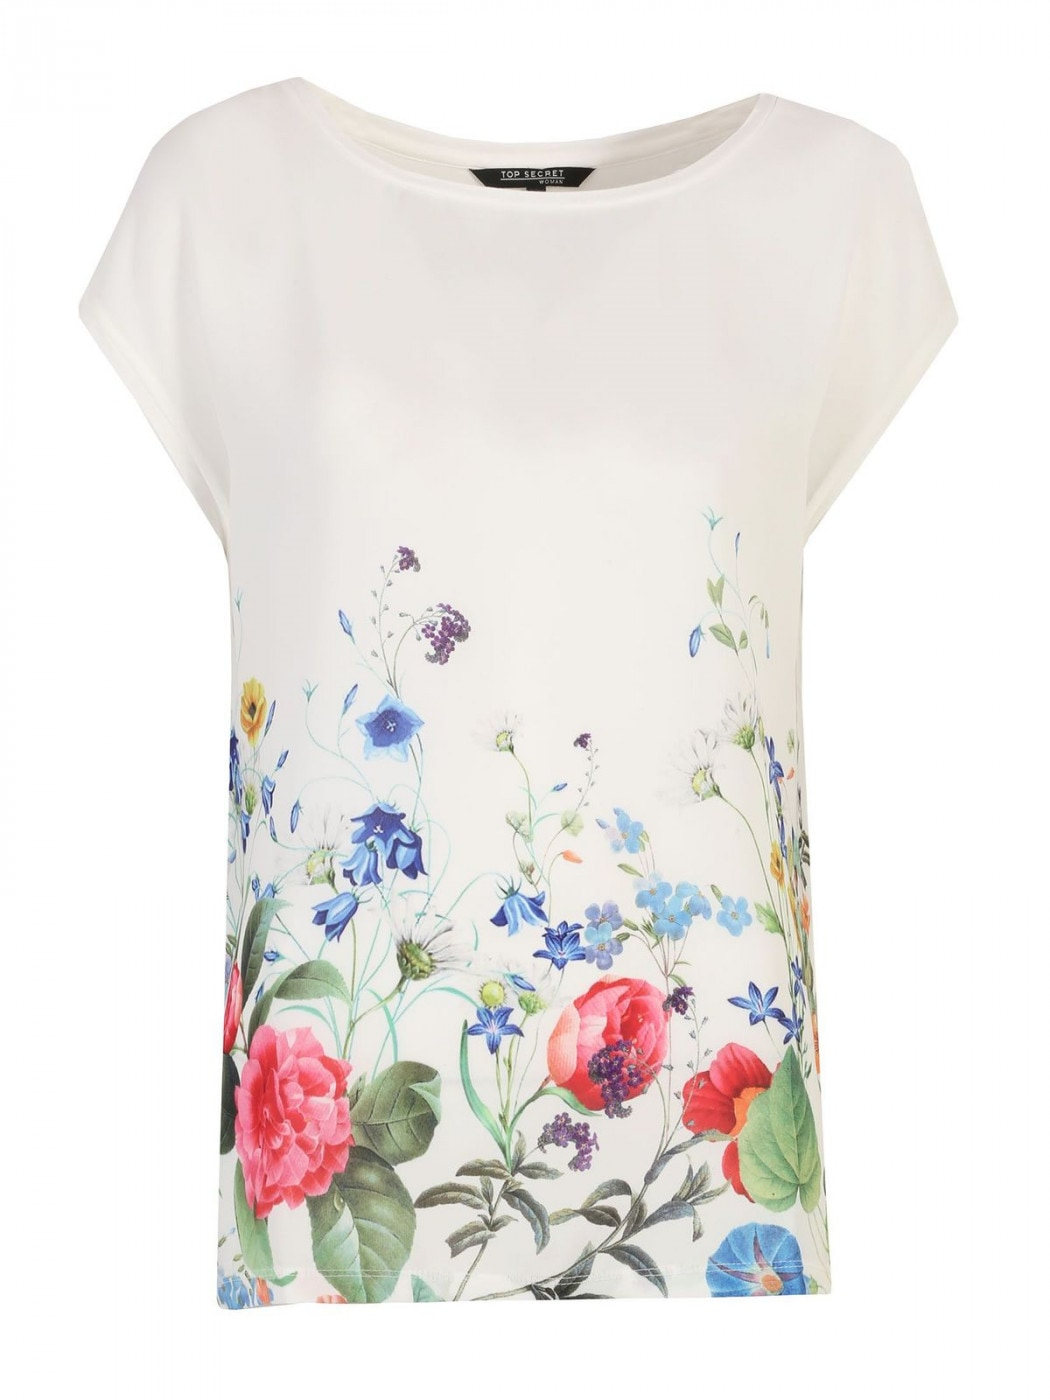 Women's T-shirt Top Secret Floral Patterned